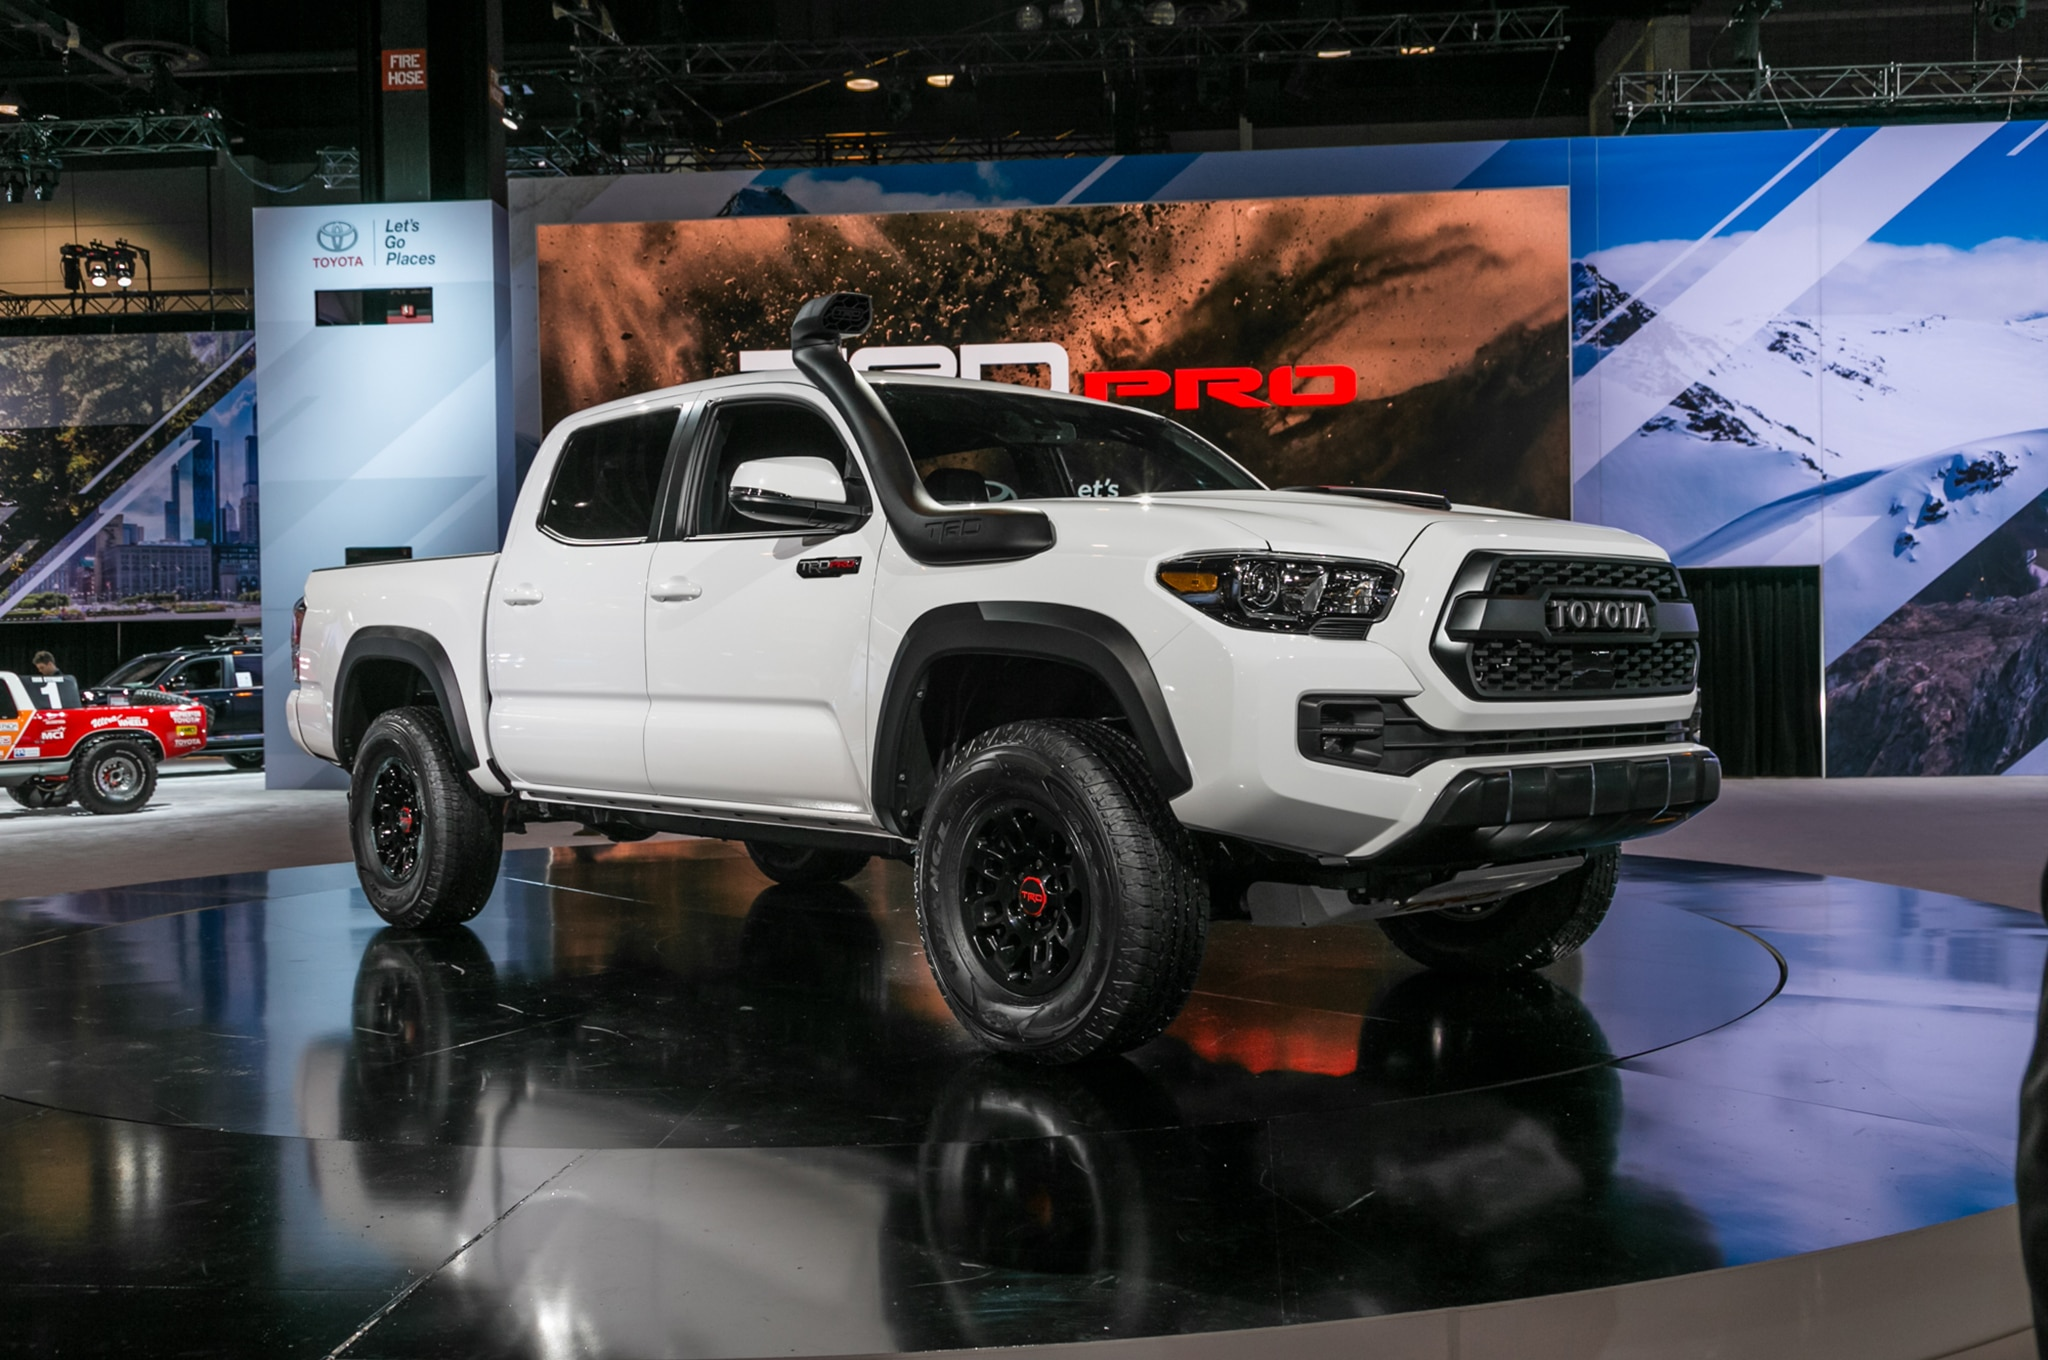 Toyota Tacoma TRD Pro Unveiled at the Chicago Auto Show